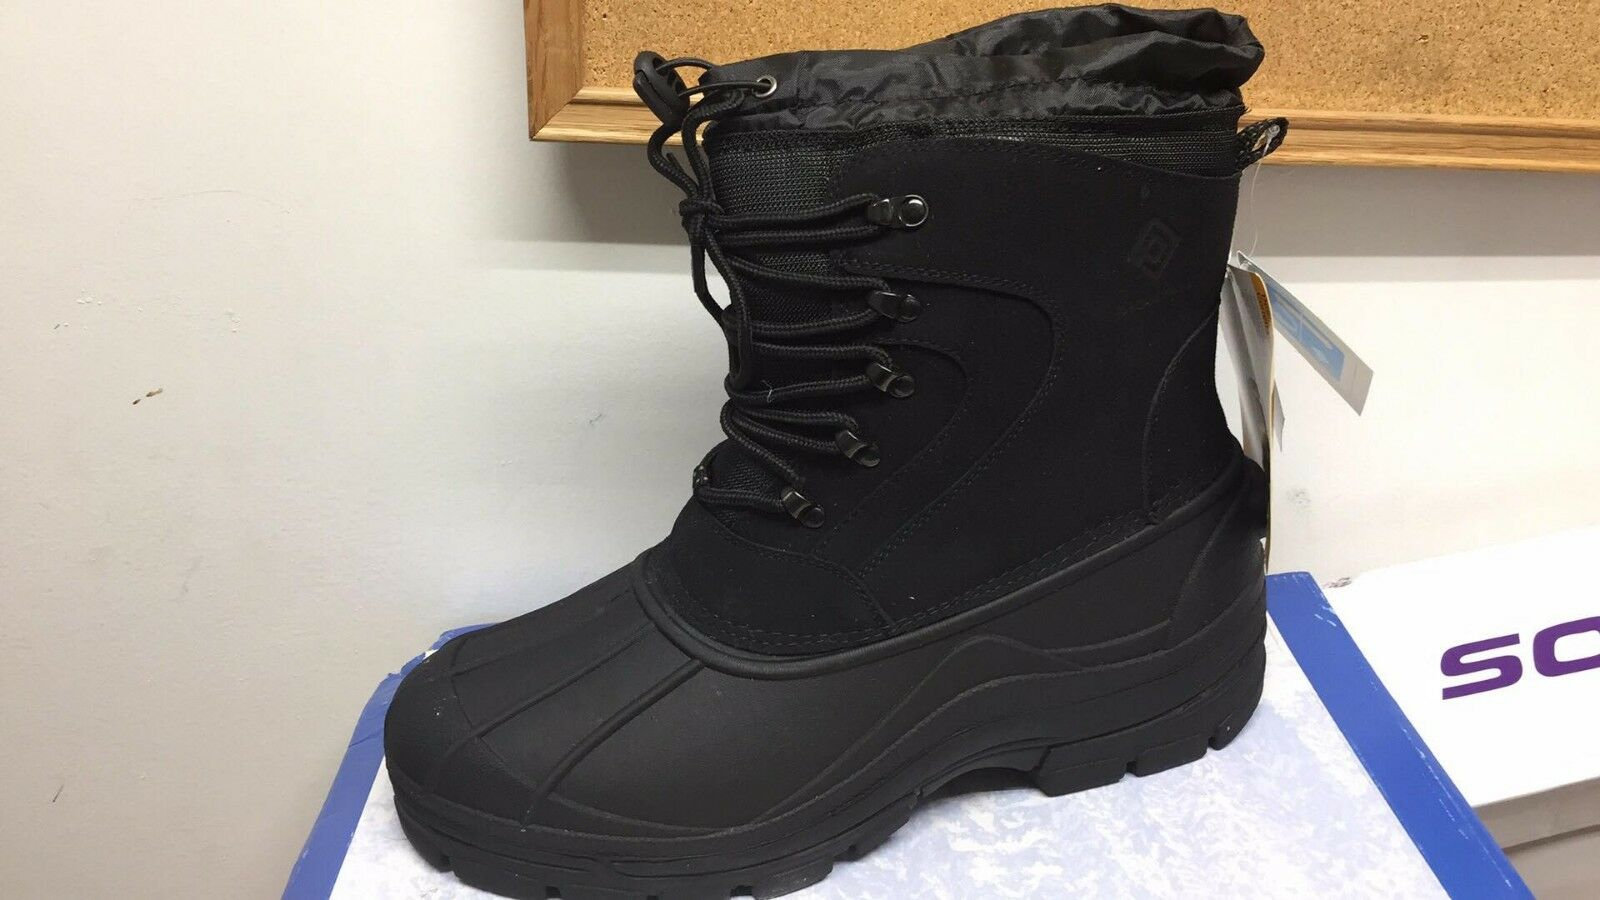 Men's Boots Winter Snow DREAM PAIRS  Force-1 Black insulated Waterproof 12 M US